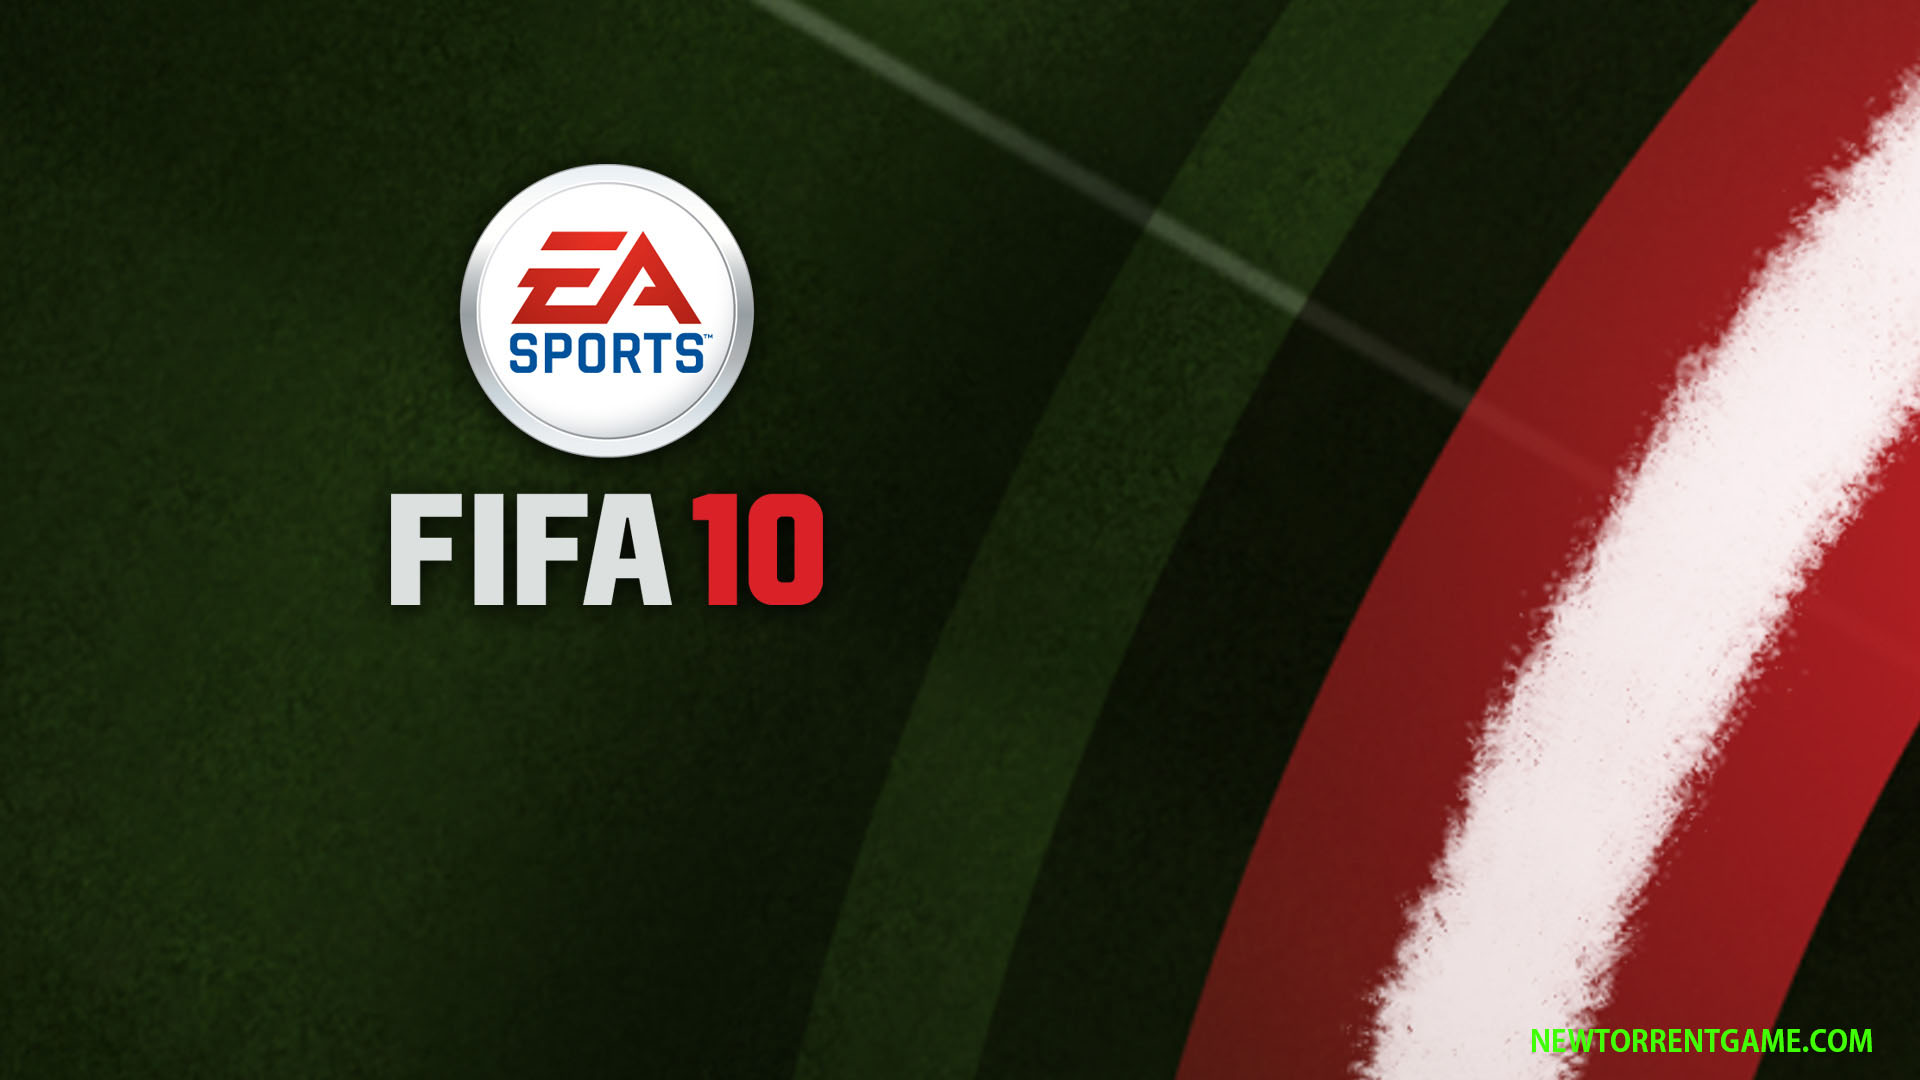 Fifa 10 game free download full version for pc.